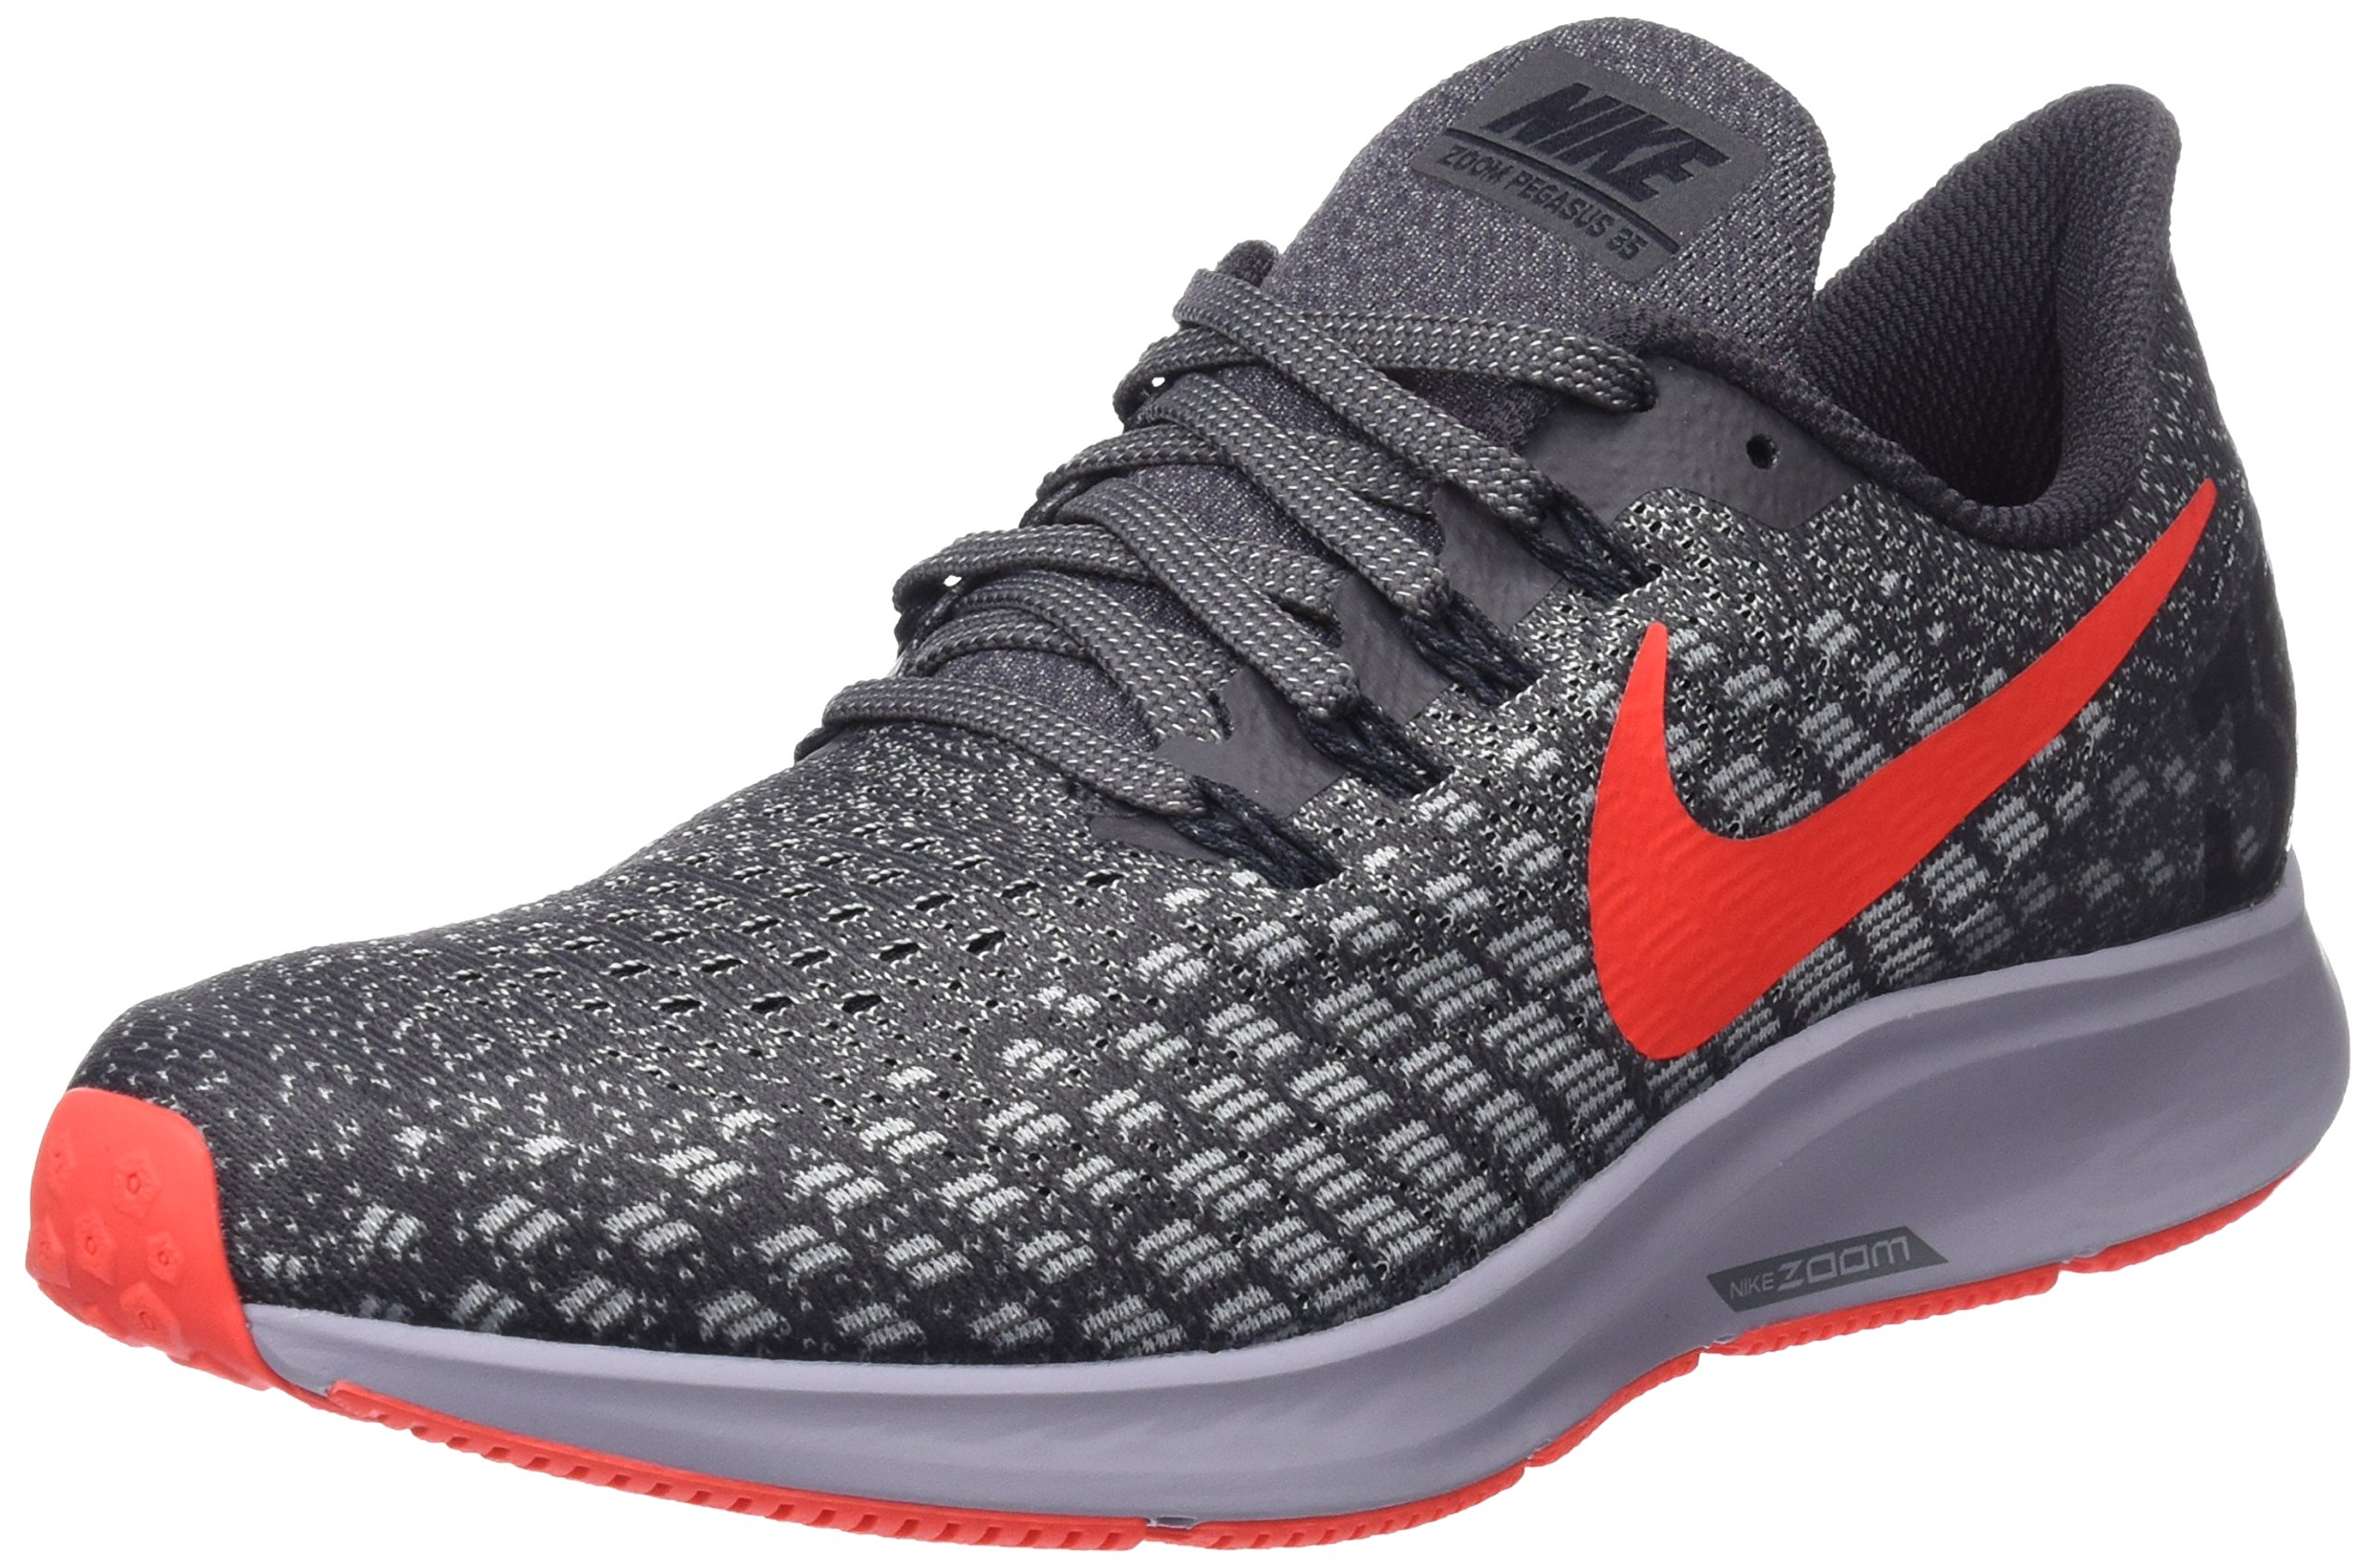 quality design a84ca 195b8 Galleon - NIKE Men s Air Zoom Pegasus 35 Running Shoe, Thunder Grey Bright  Crimson-Phantom, 10